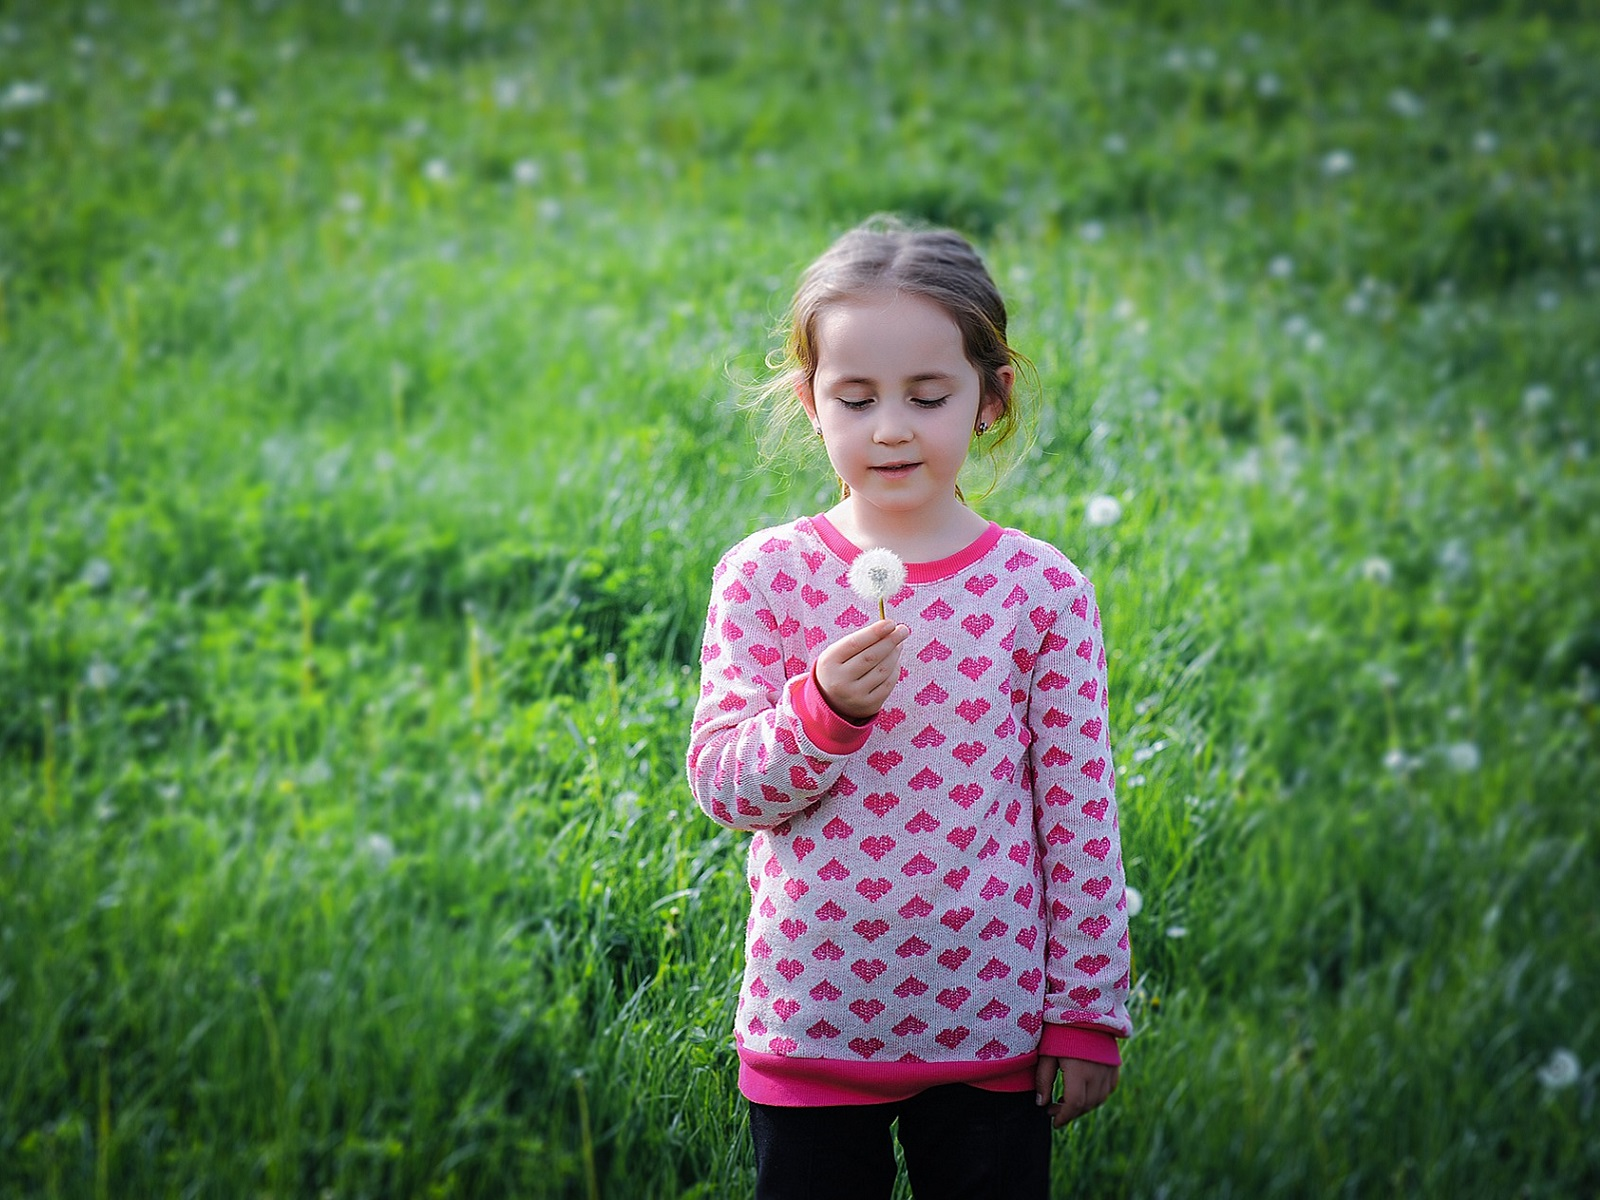 A young girl standing in a meadow with a dandelion